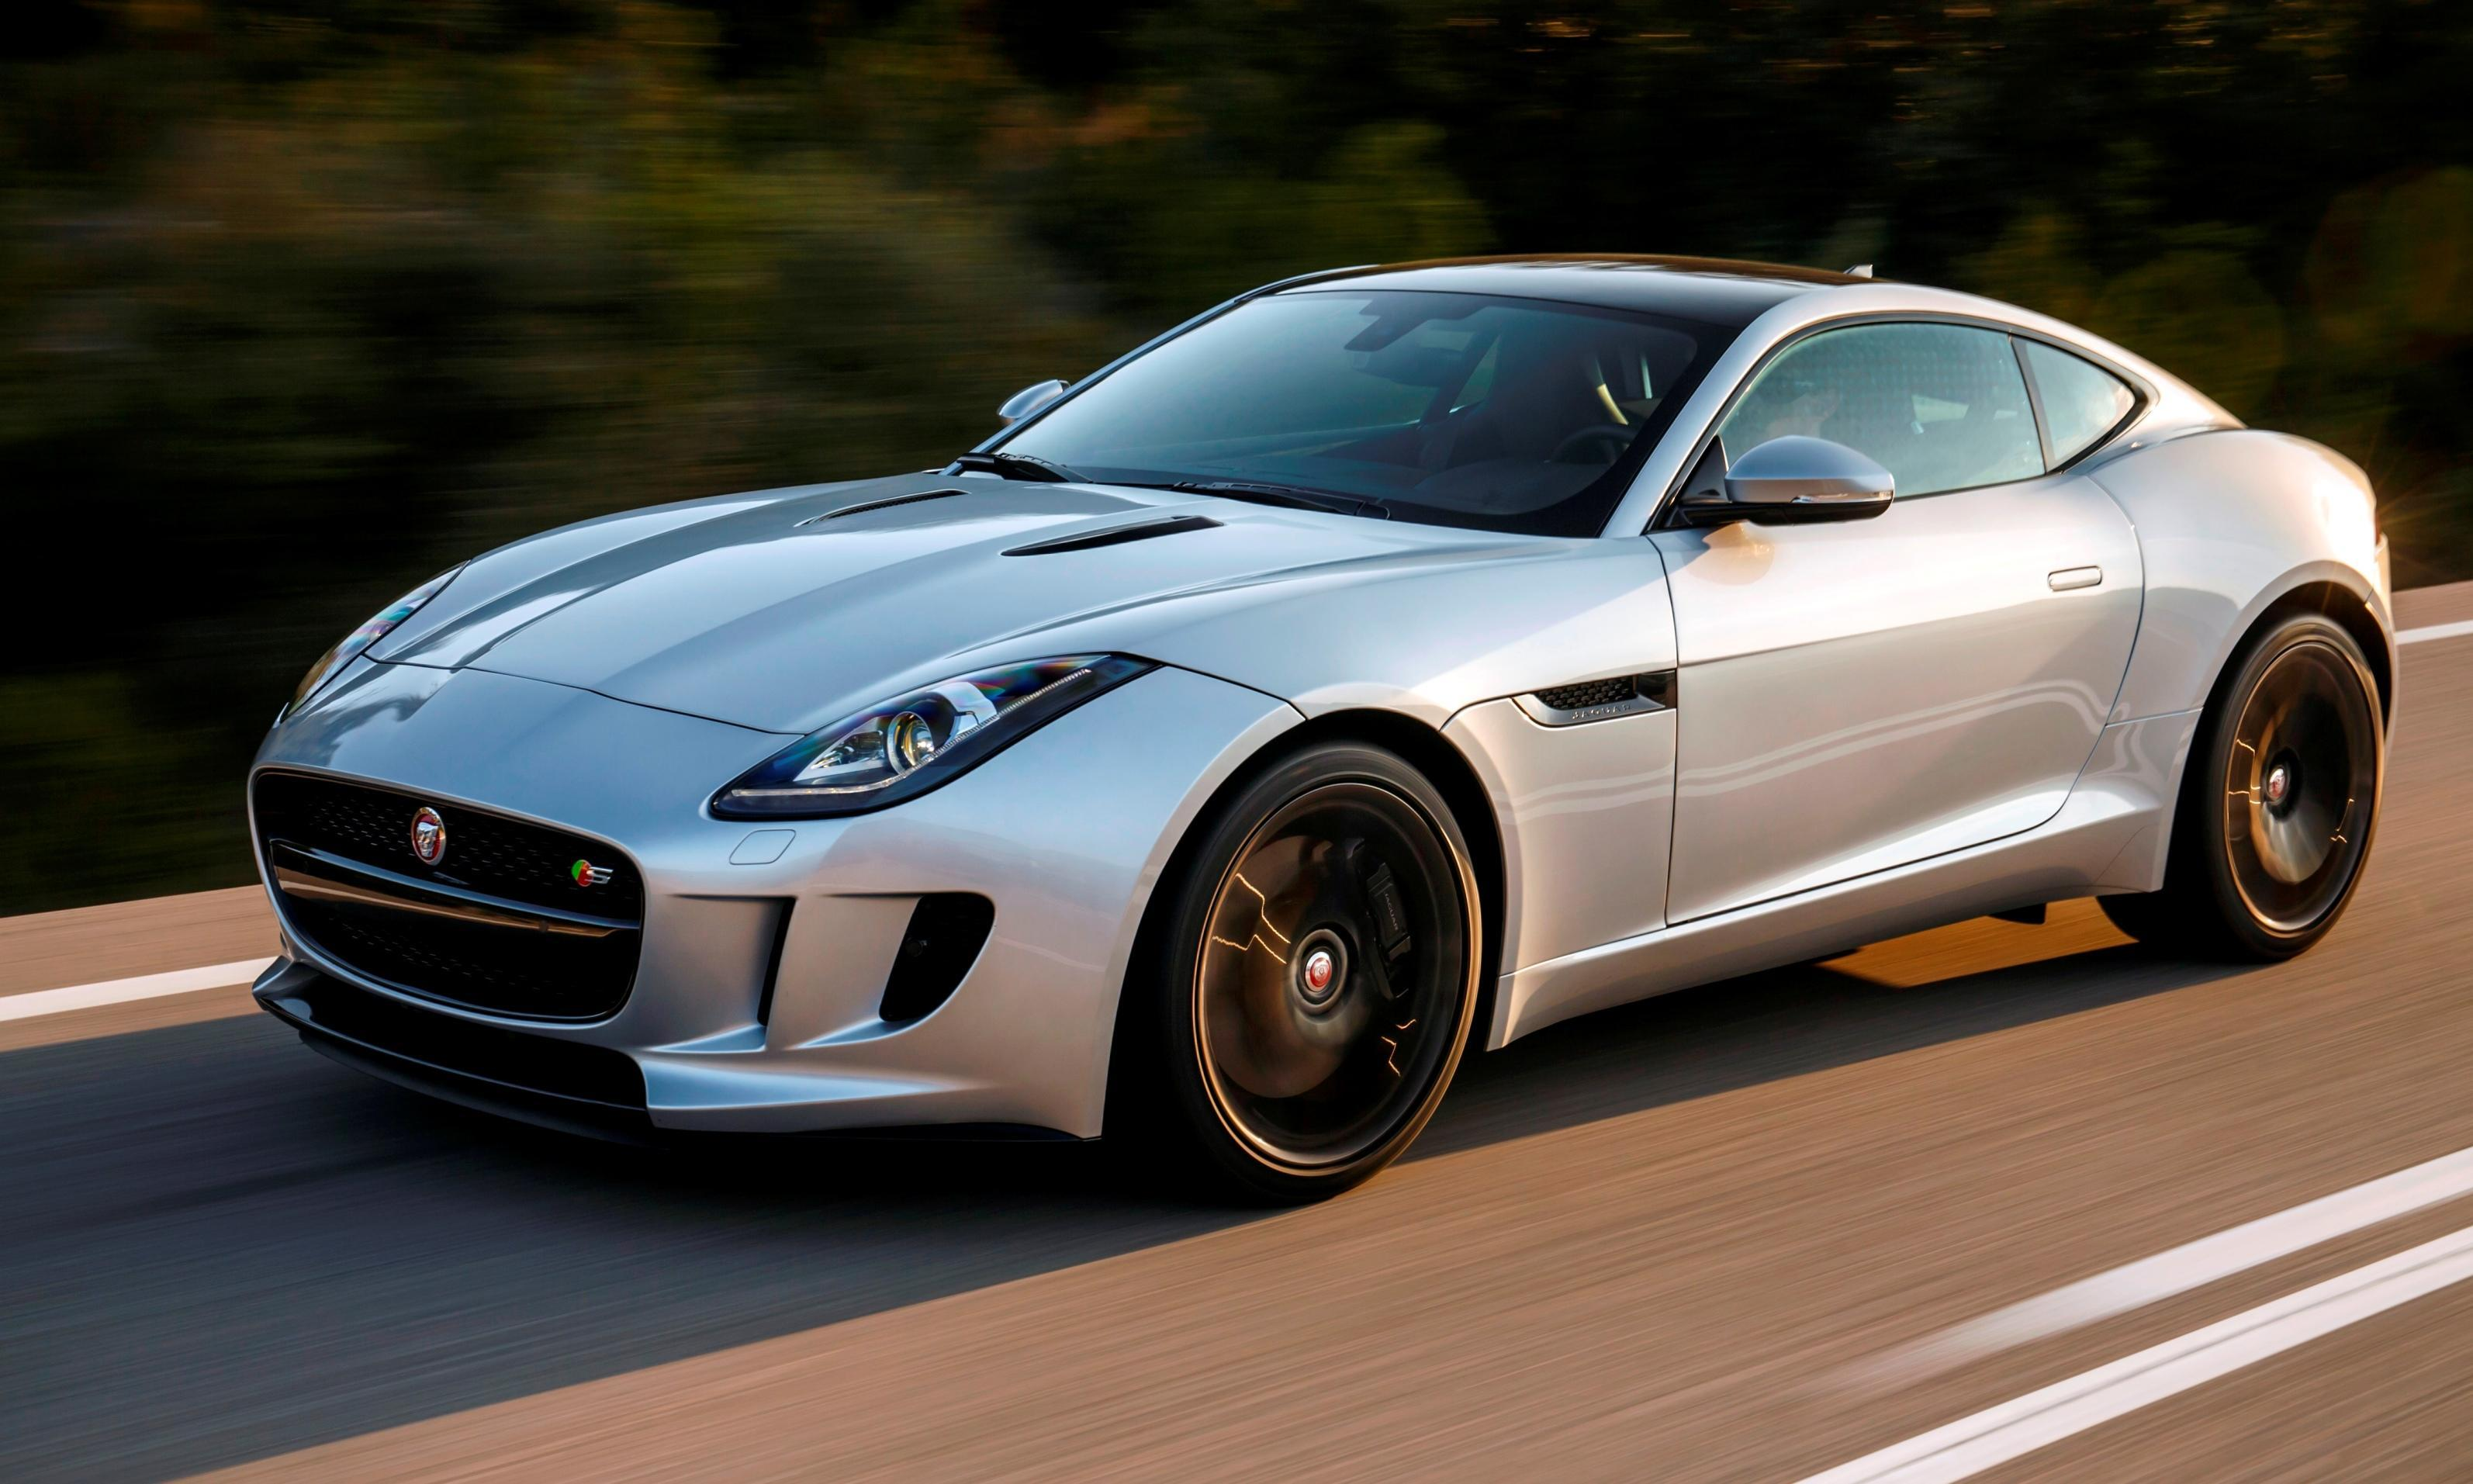 2015 JAGUAR F-Type Coupe - American Launch at Willow Springs